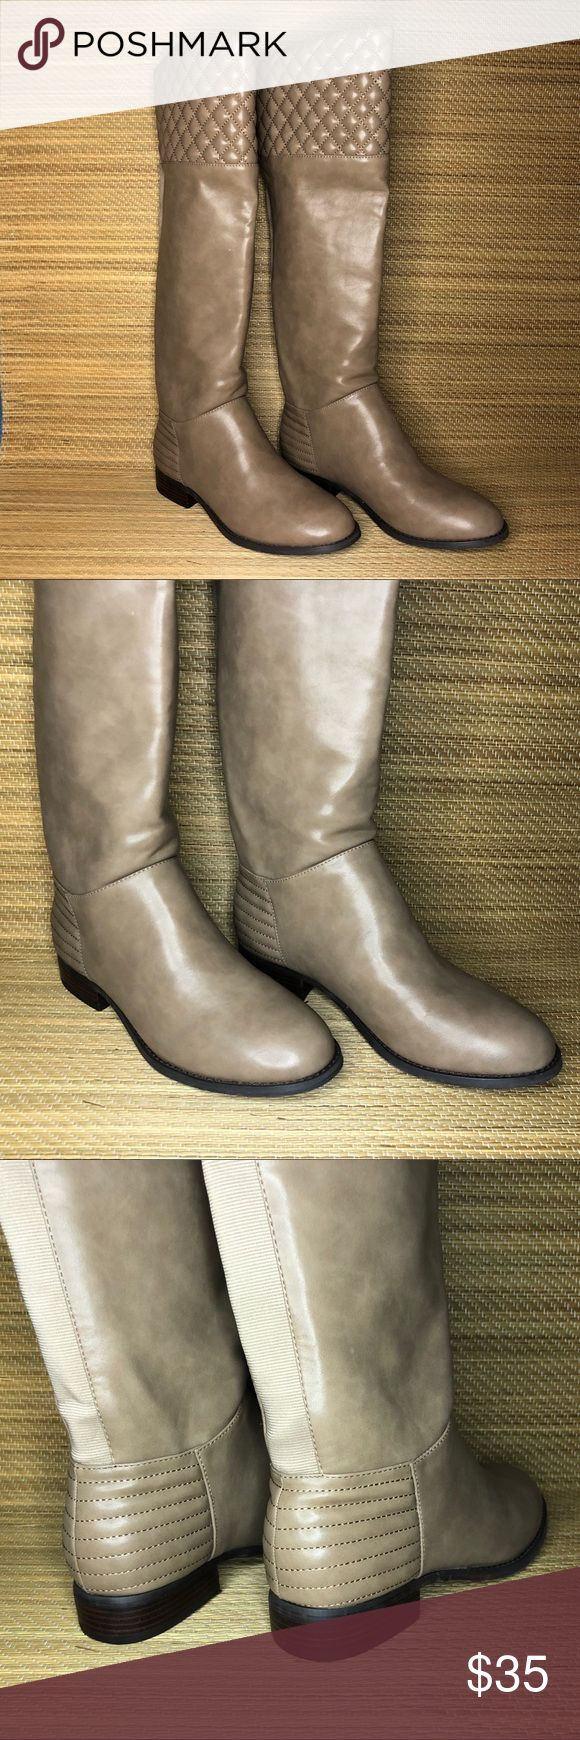 Chinese Laundry Boots Size 6 Chinese Laundry Boots Size 6 Nude Right below knee …